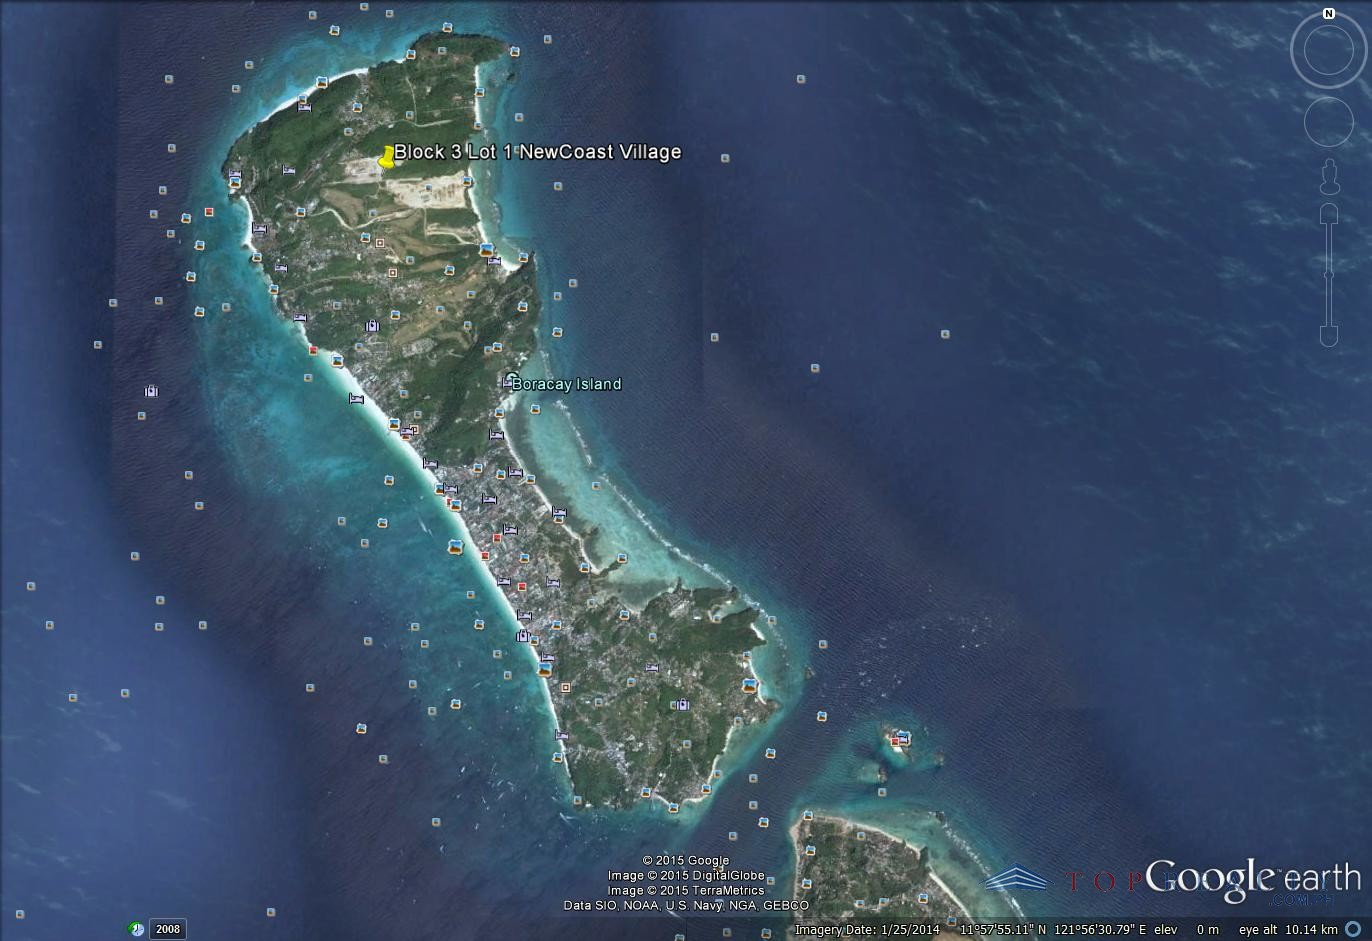 Top realty corporation perfect beachfront location hotel lot for google earth map gumiabroncs Image collections